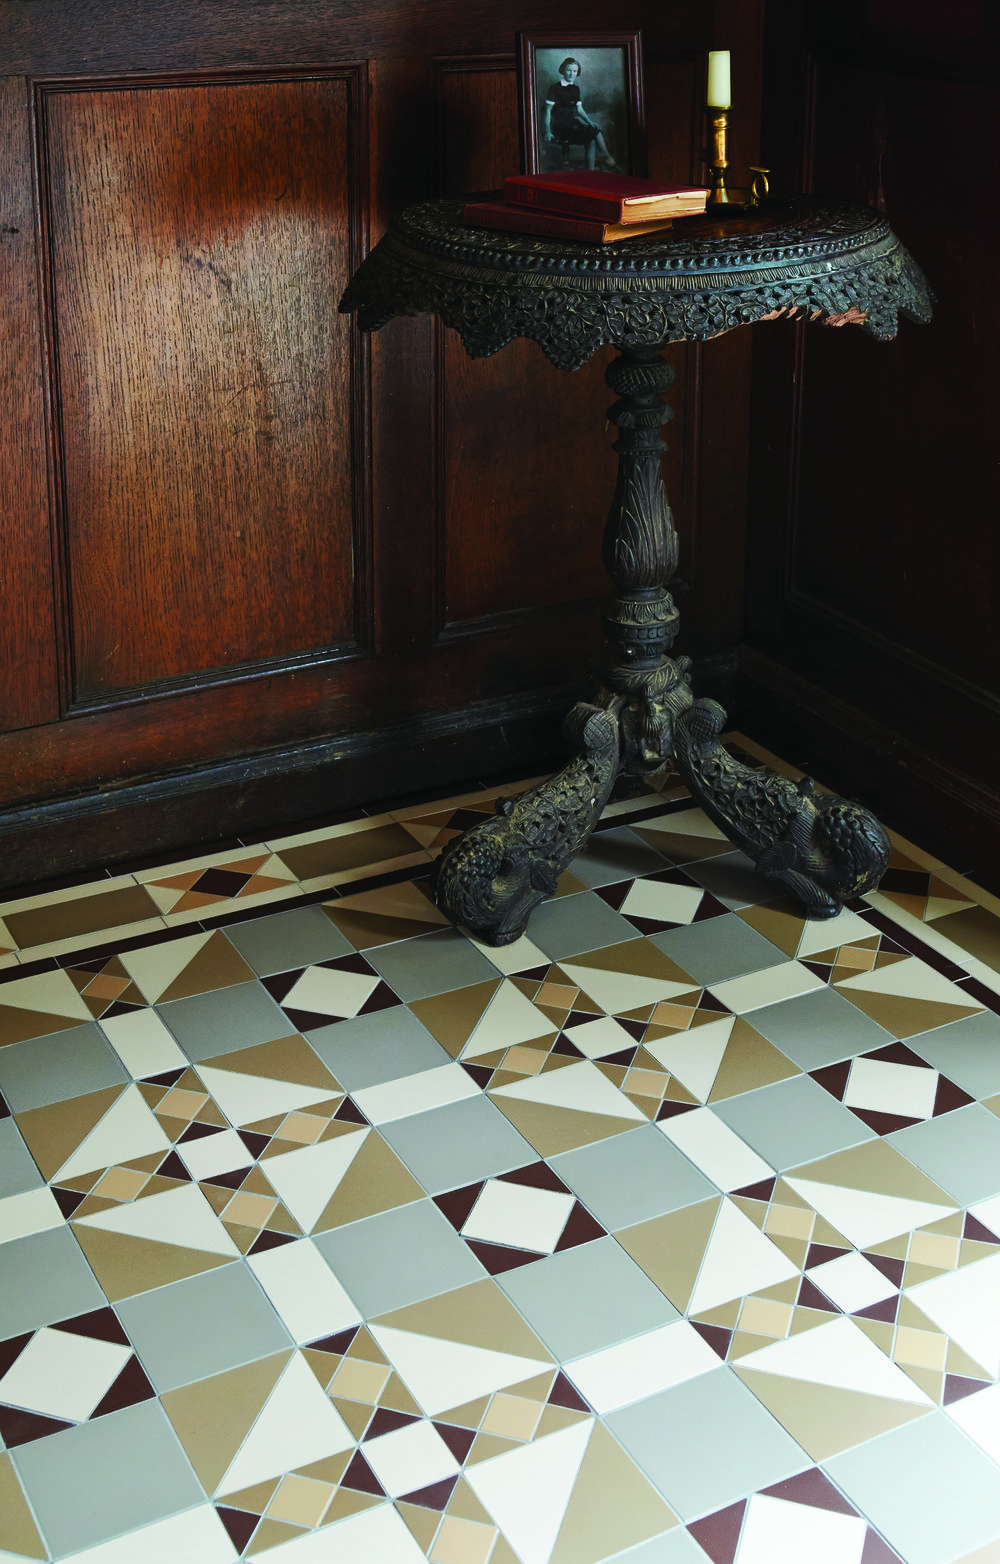 Original Style - VFT - Colchester pattern with Conrad border (modified) in Holkham Dune, Regency Bath, White, Brown, Old London 2.jpg